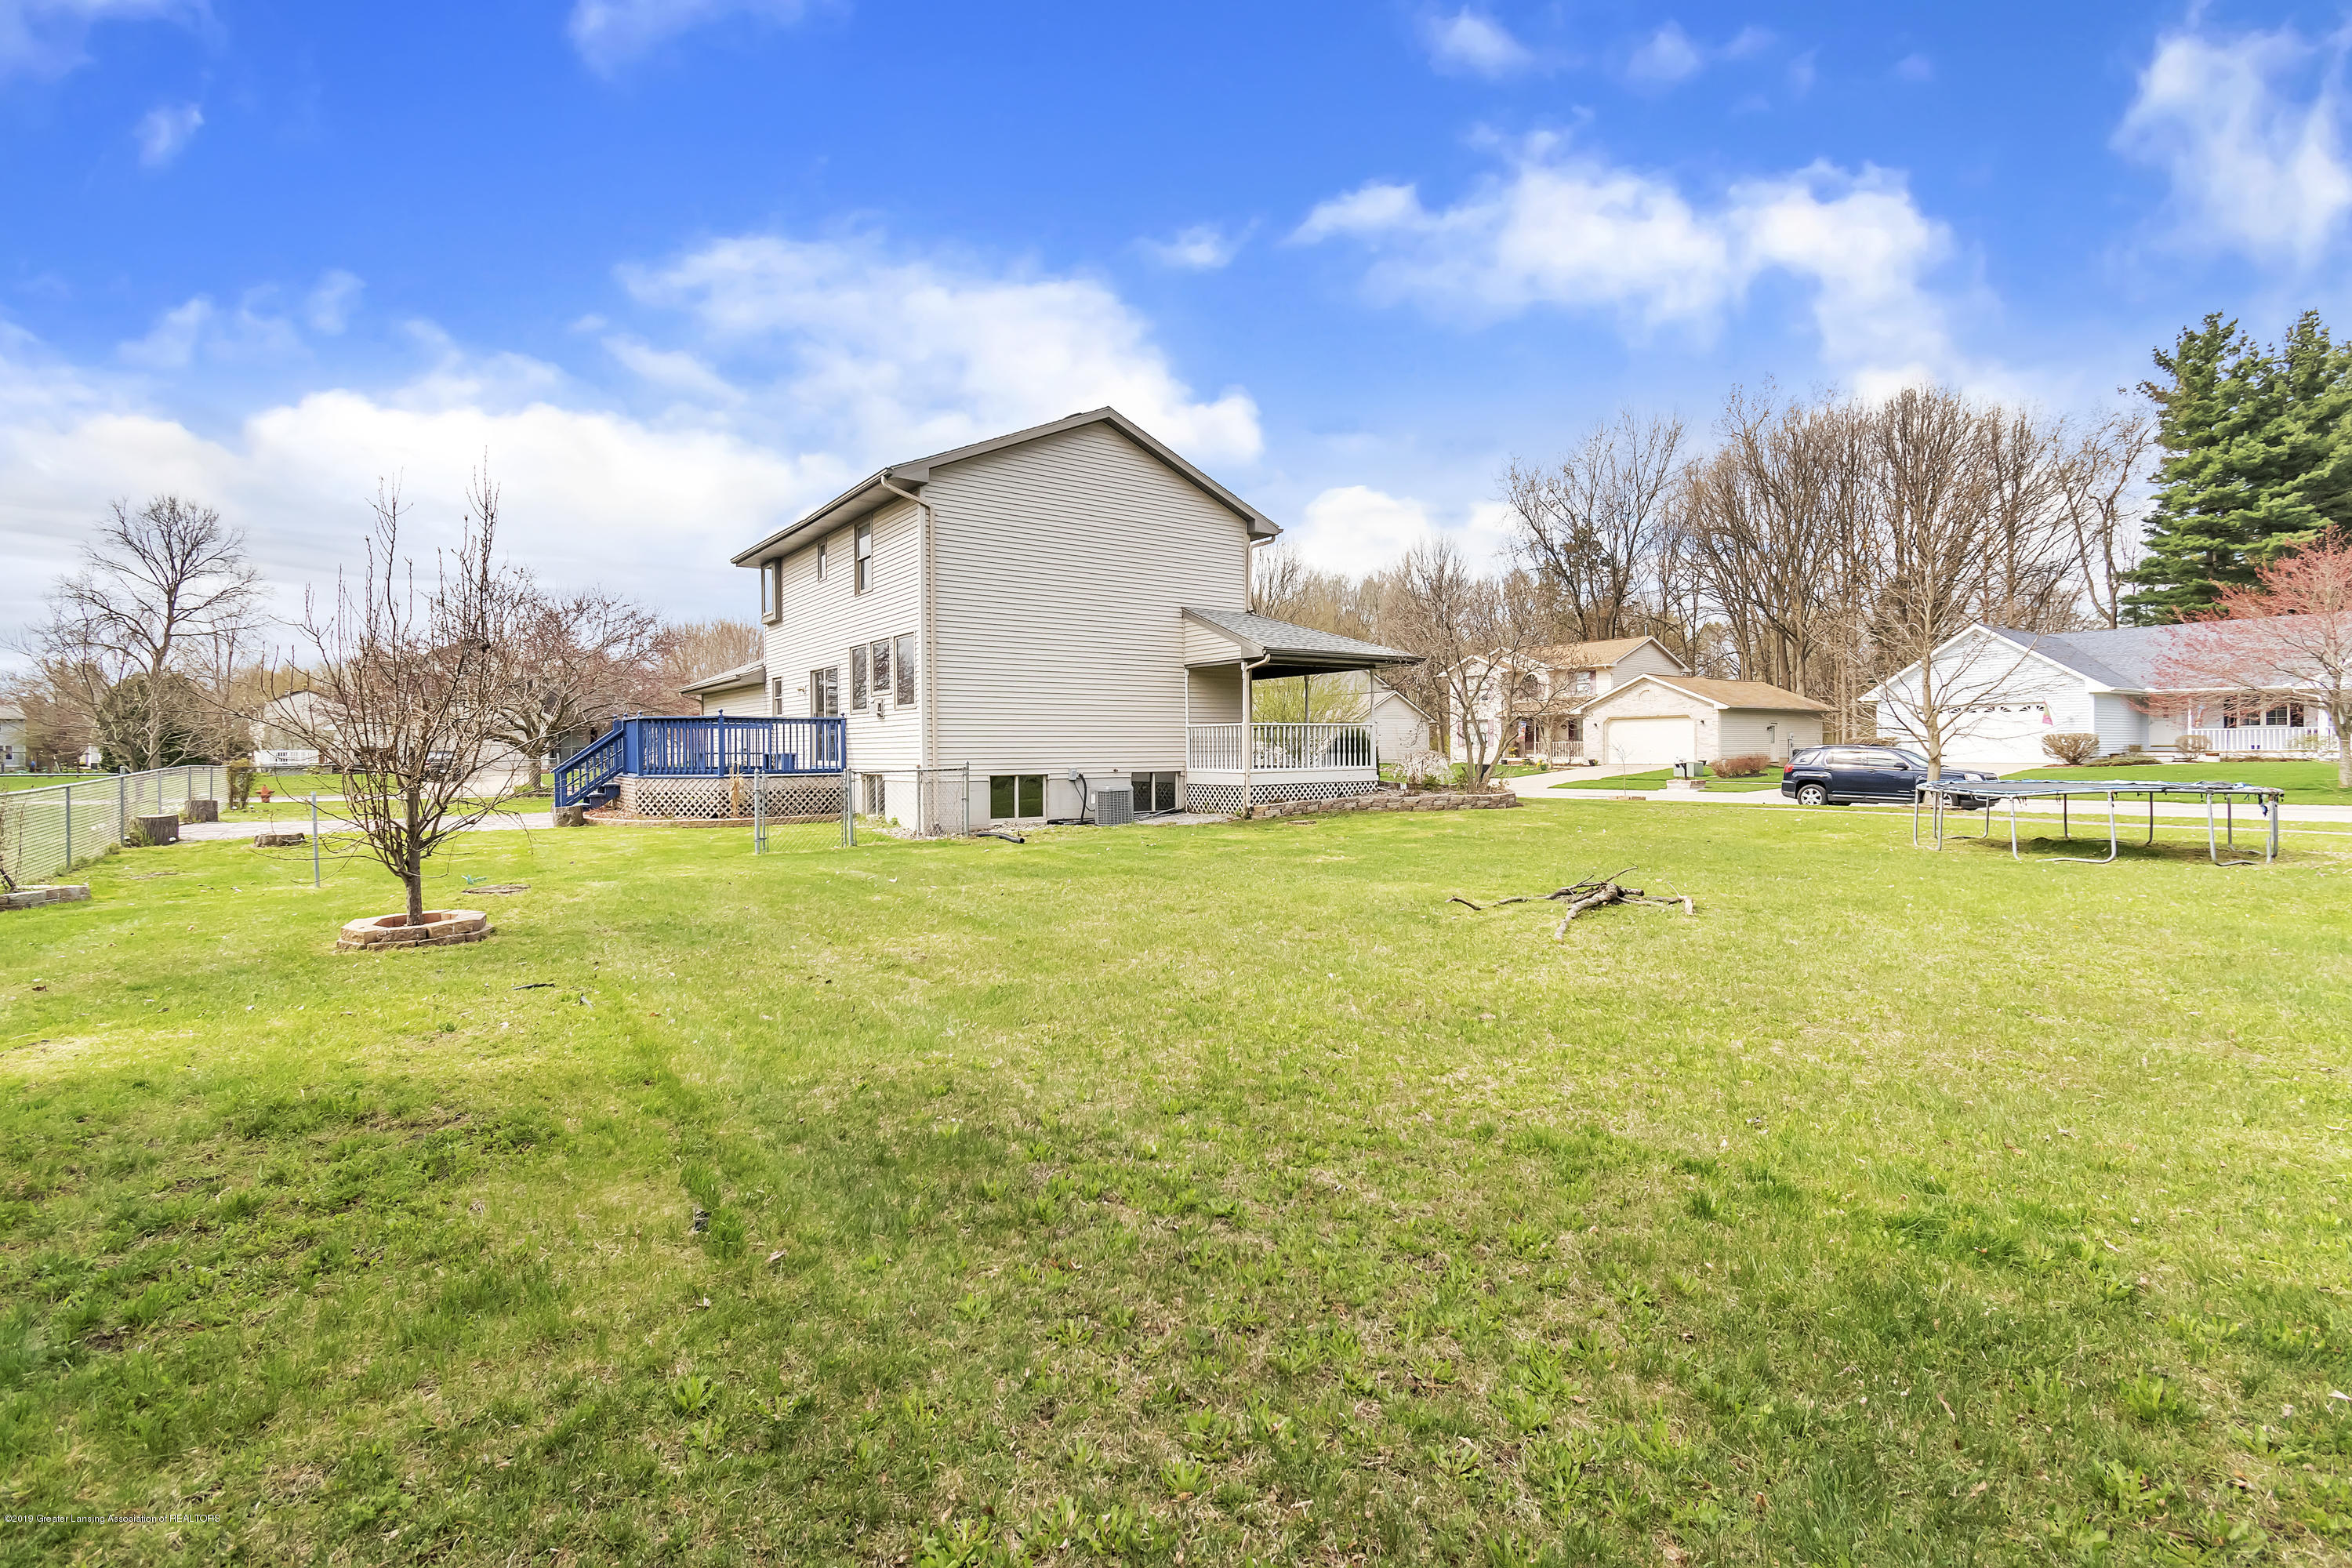 2600 Ayrshire Dr - Double Lot2 - 39